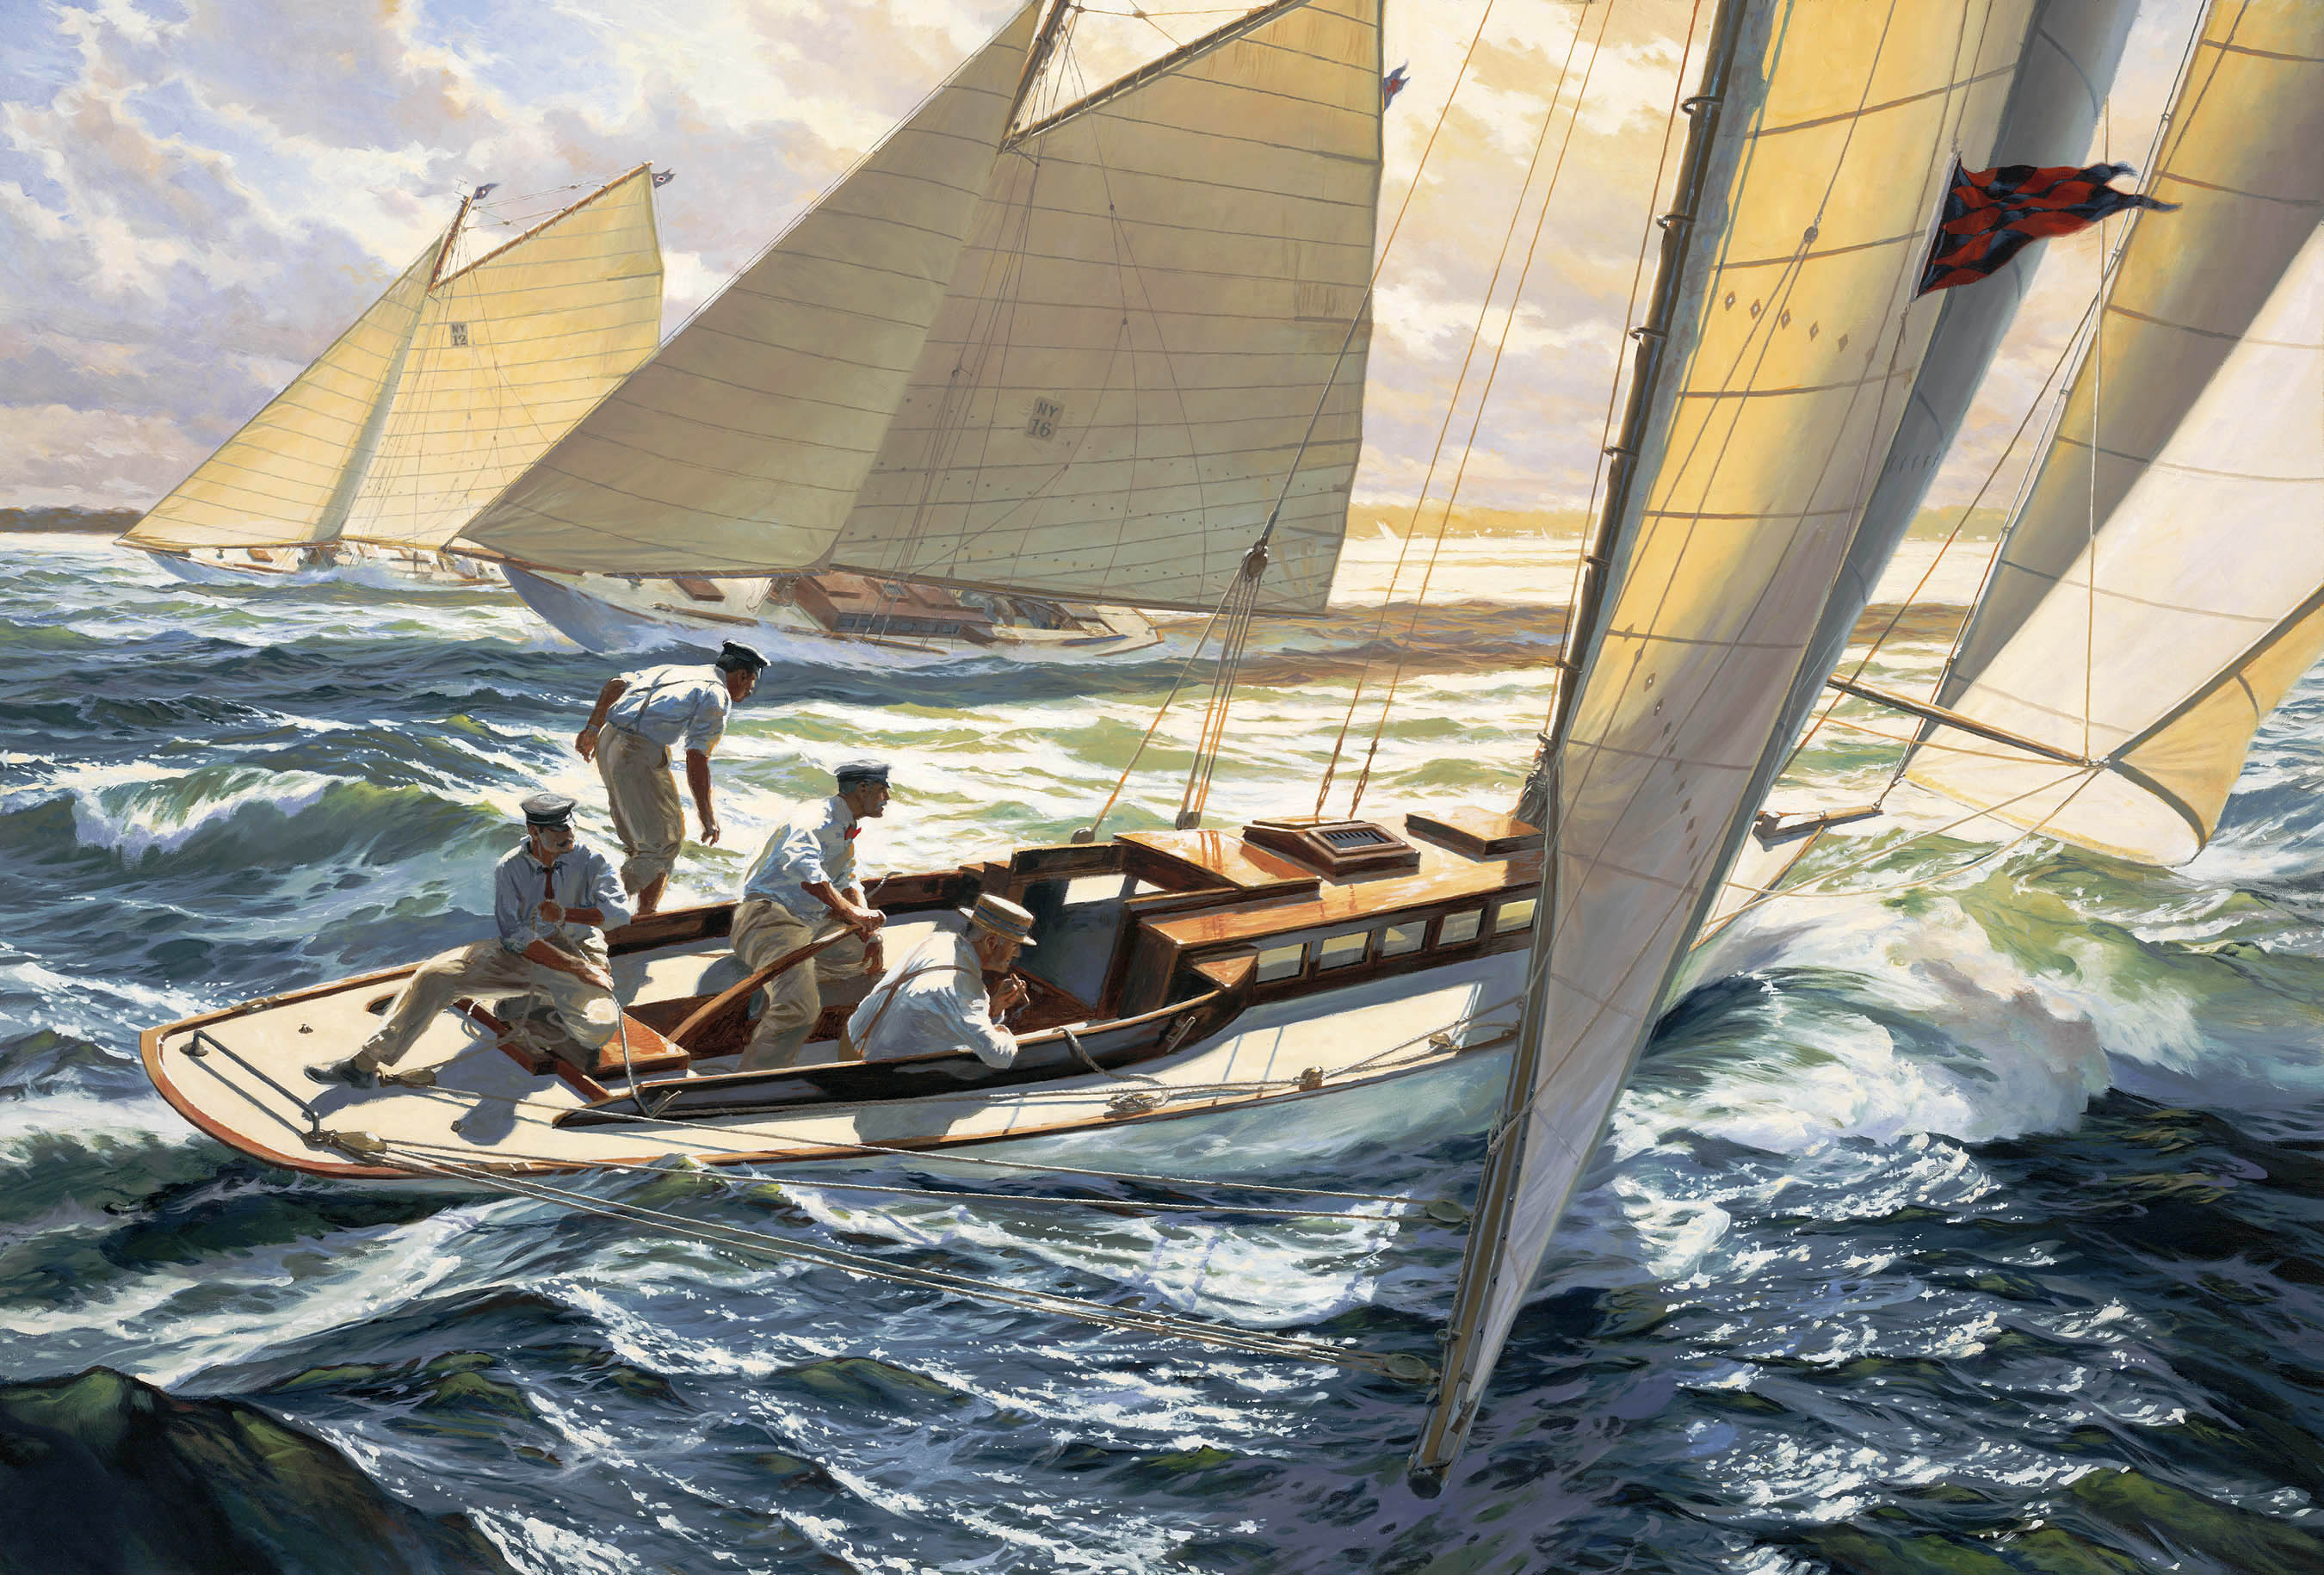 """The Joy of Sailing: CARA MIA and the New York 30s of 1905"""